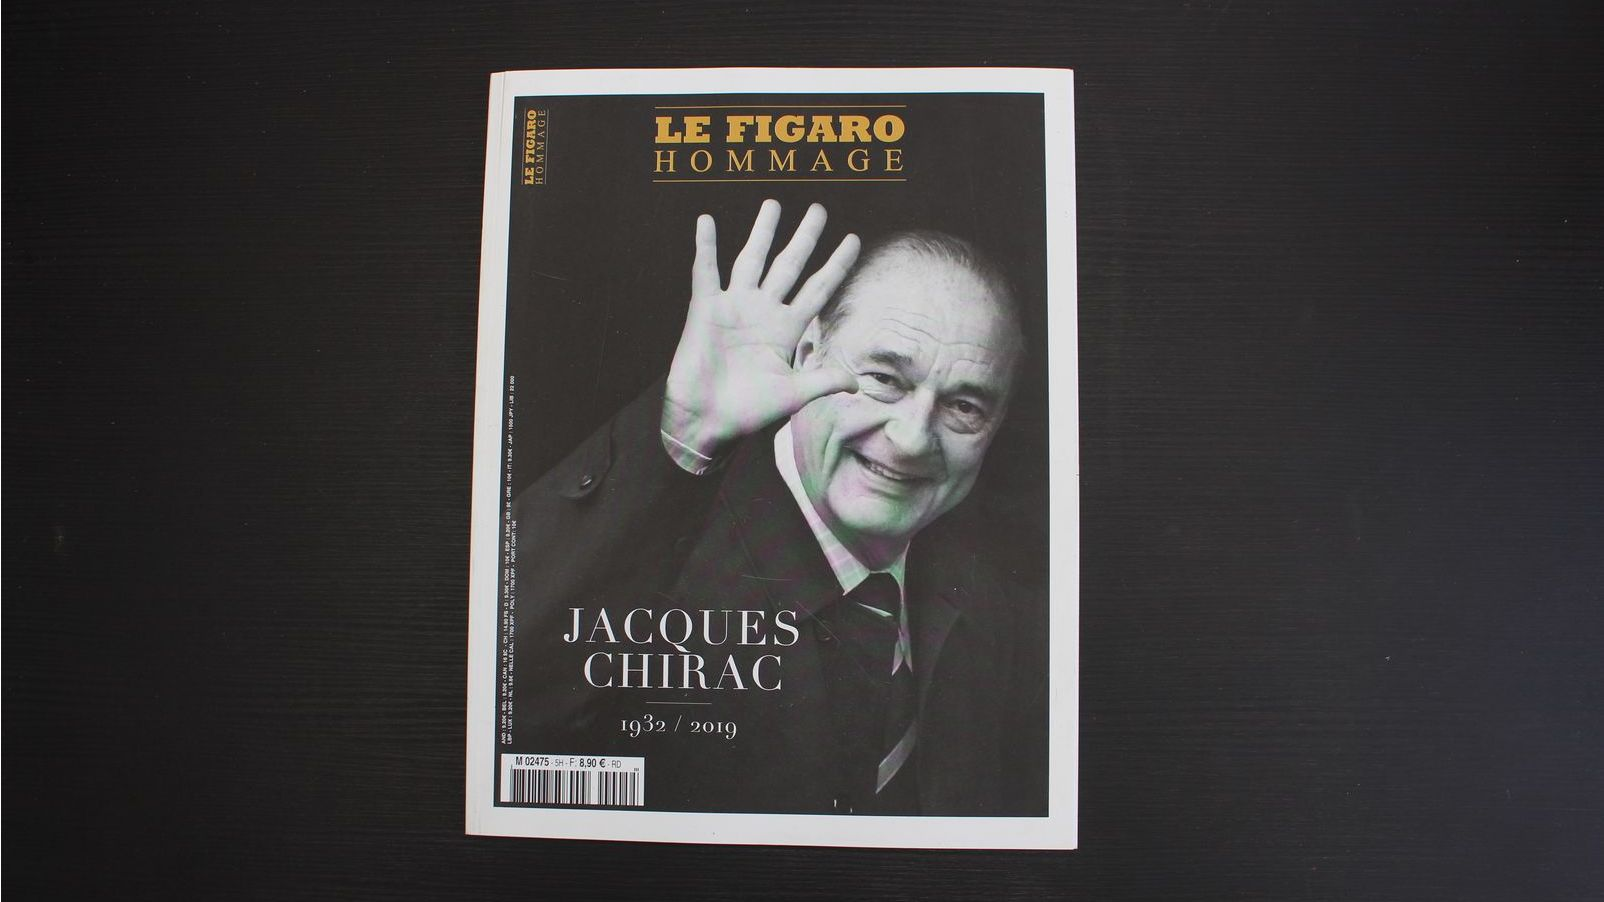 Photo 1 - Jacques Chirac - Hommage